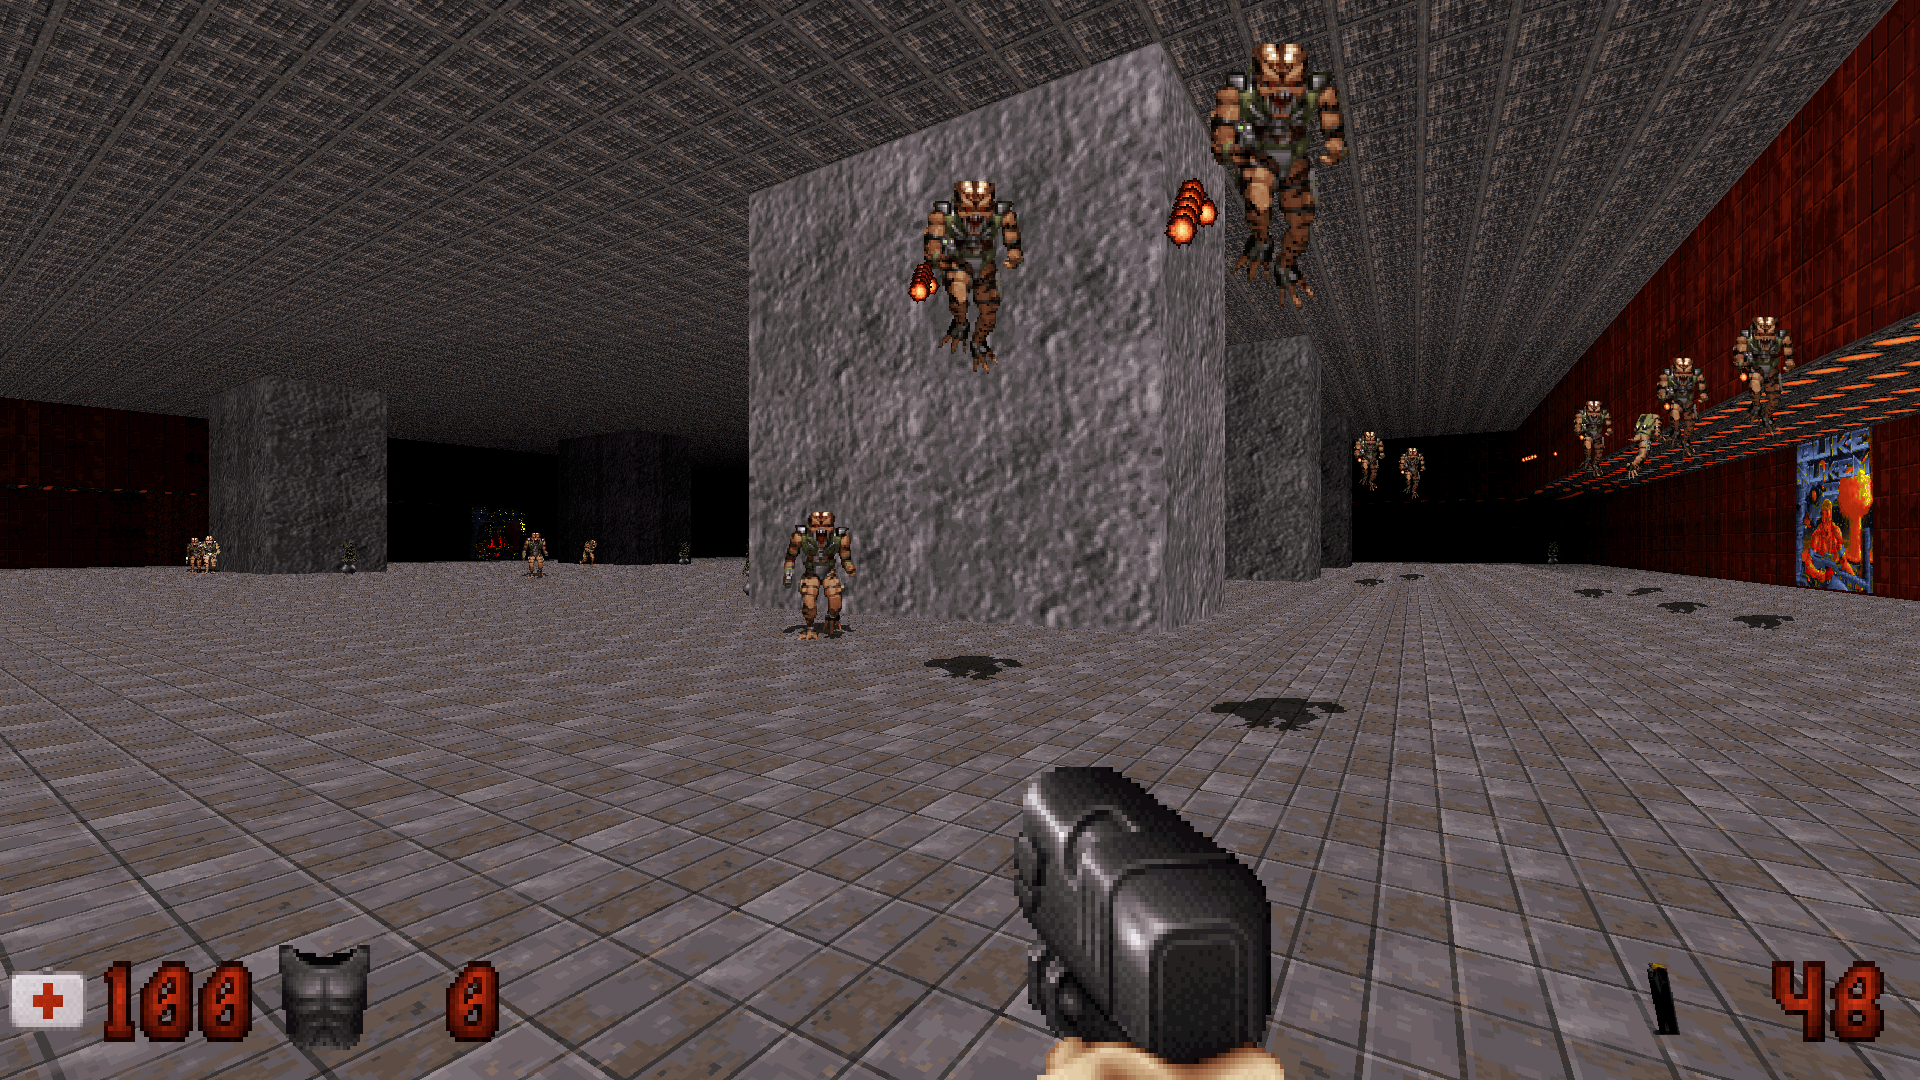 Map: Grosse - From Doom II, author: Gavin Sanders on arma 2 operation arrowhead maps, mortal kombat 2 maps, super mario kart maps, enemy territory maps, dino crisis 2 maps, twisted metal 3 maps, day of defeat maps, super smash bros maps, dystopia maps, quake 2 maps, dungeon keeper 2 maps, minecraft maps, cities xl maps, simcity maps, hexen maps, star wars kotor maps, starcraft maps, call of duty maps, dark forces maps,